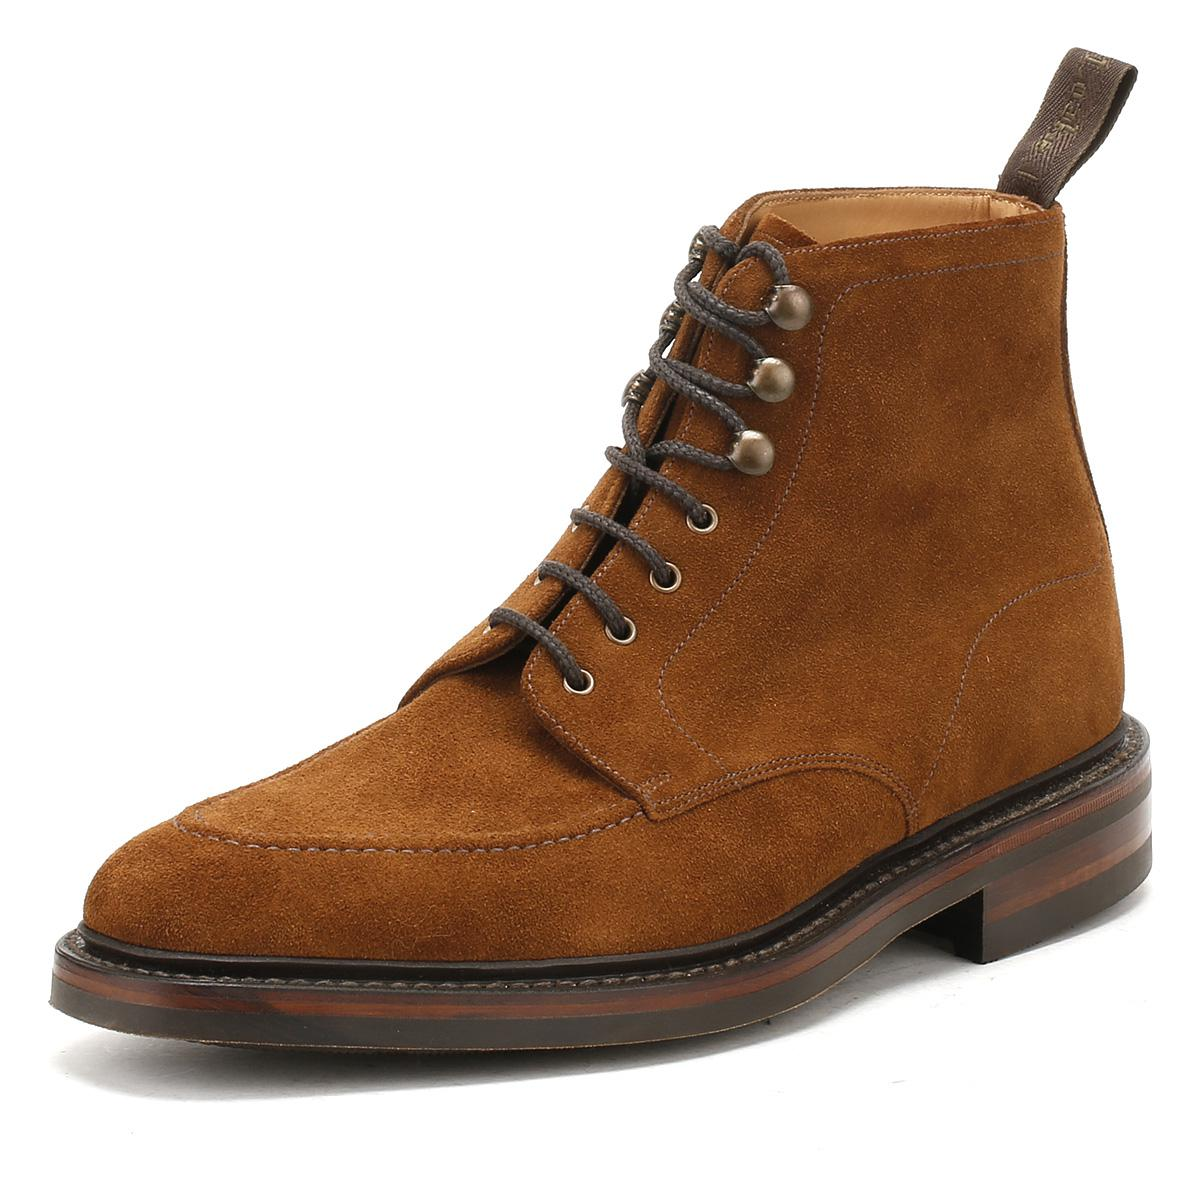 Lyst Loake Mens Tan Suede Anglesey Boots In Brown For Men